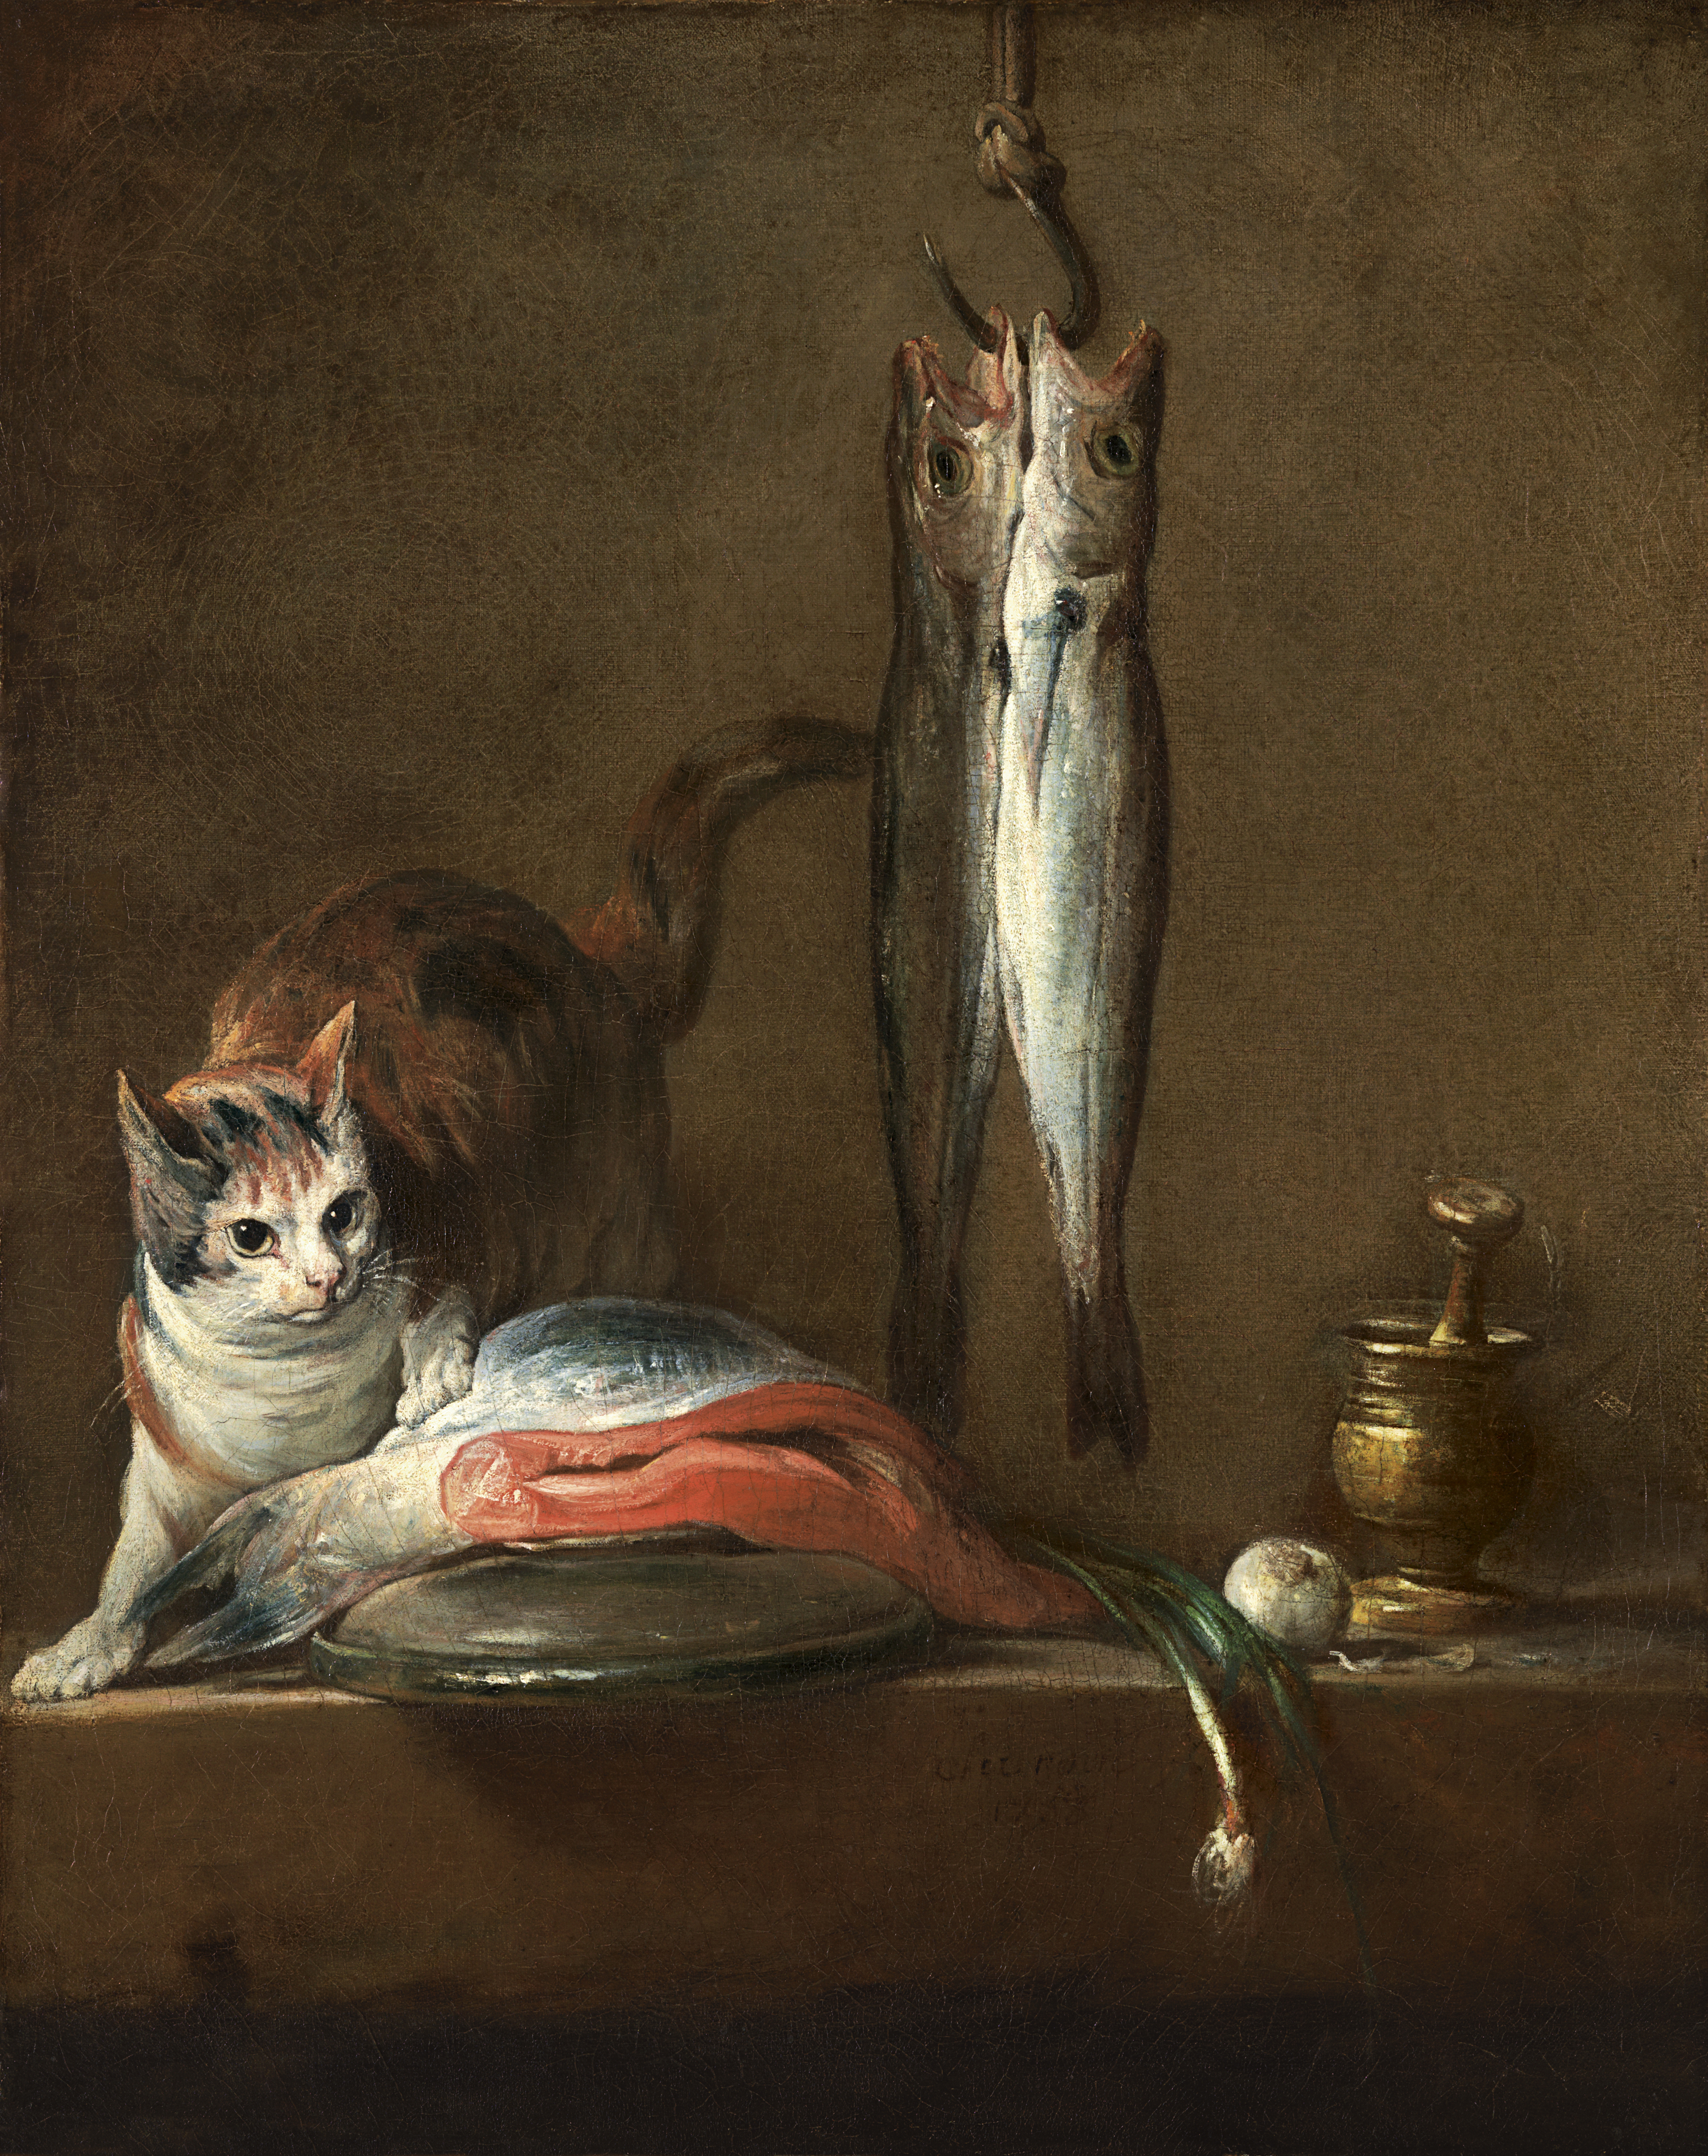 still life with cat and fish chardin jean baptiste simèon museo